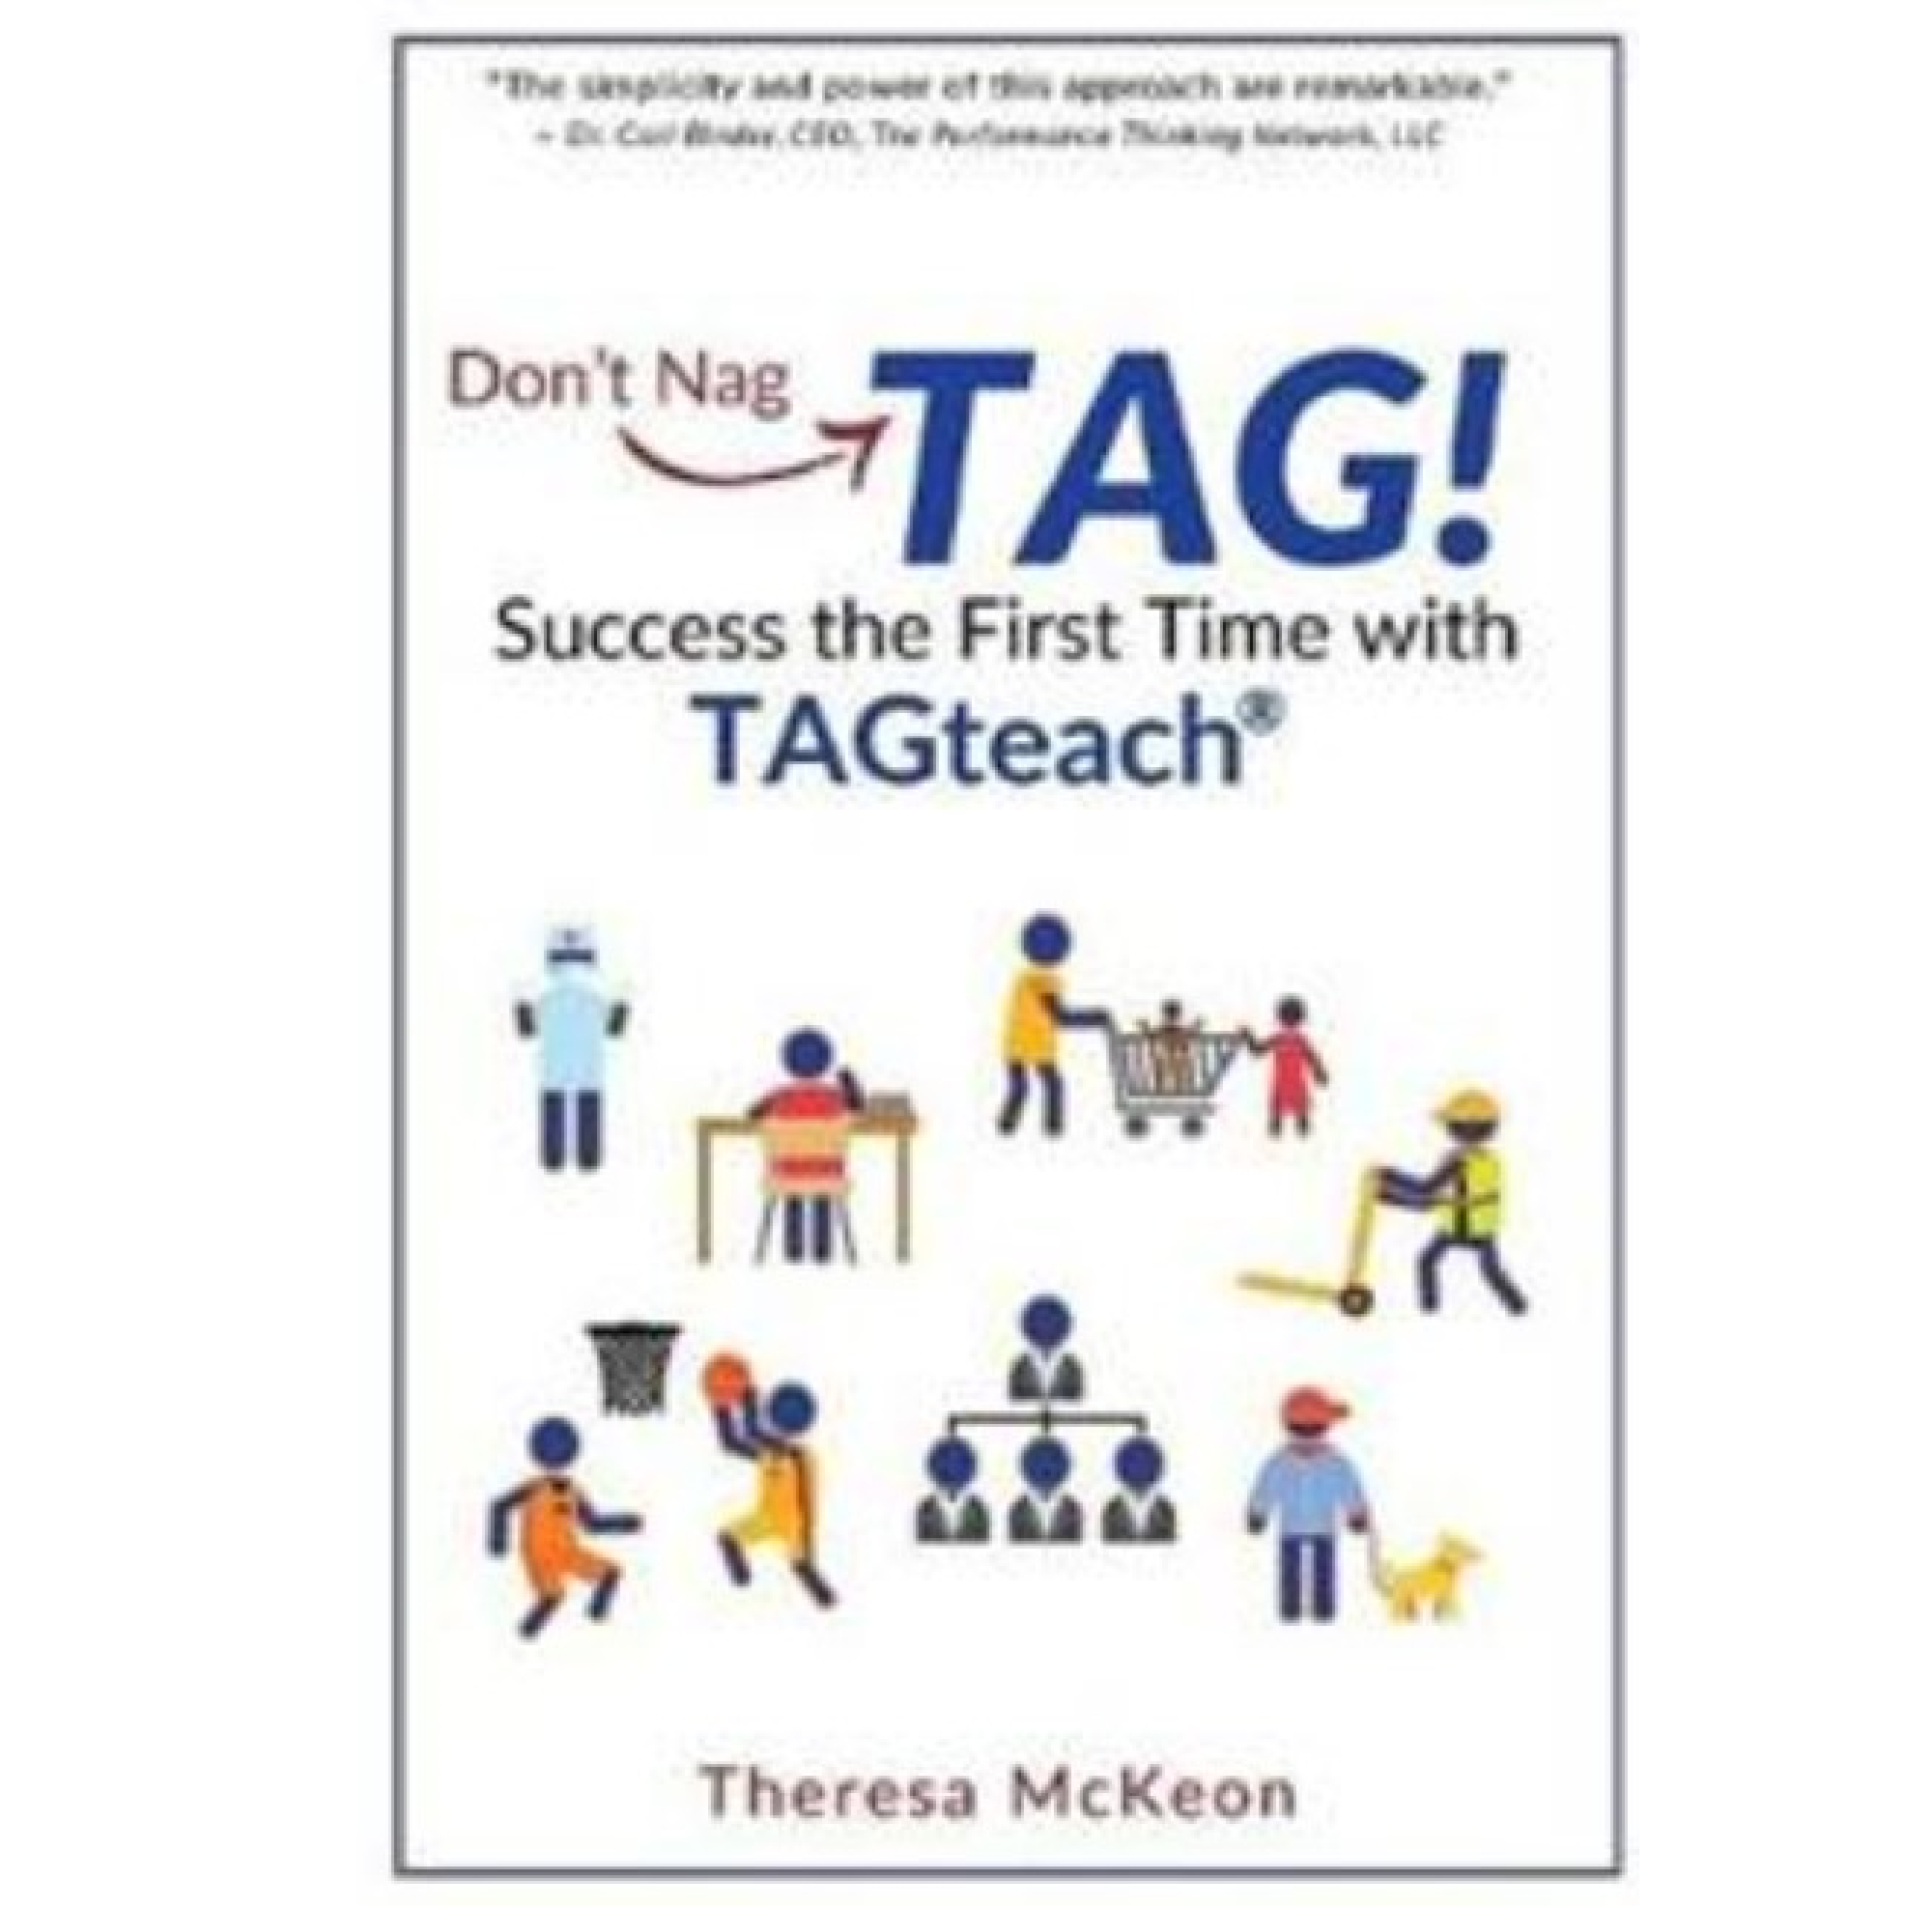 Don't Nag TAG! - Success the First Time with TAGteach